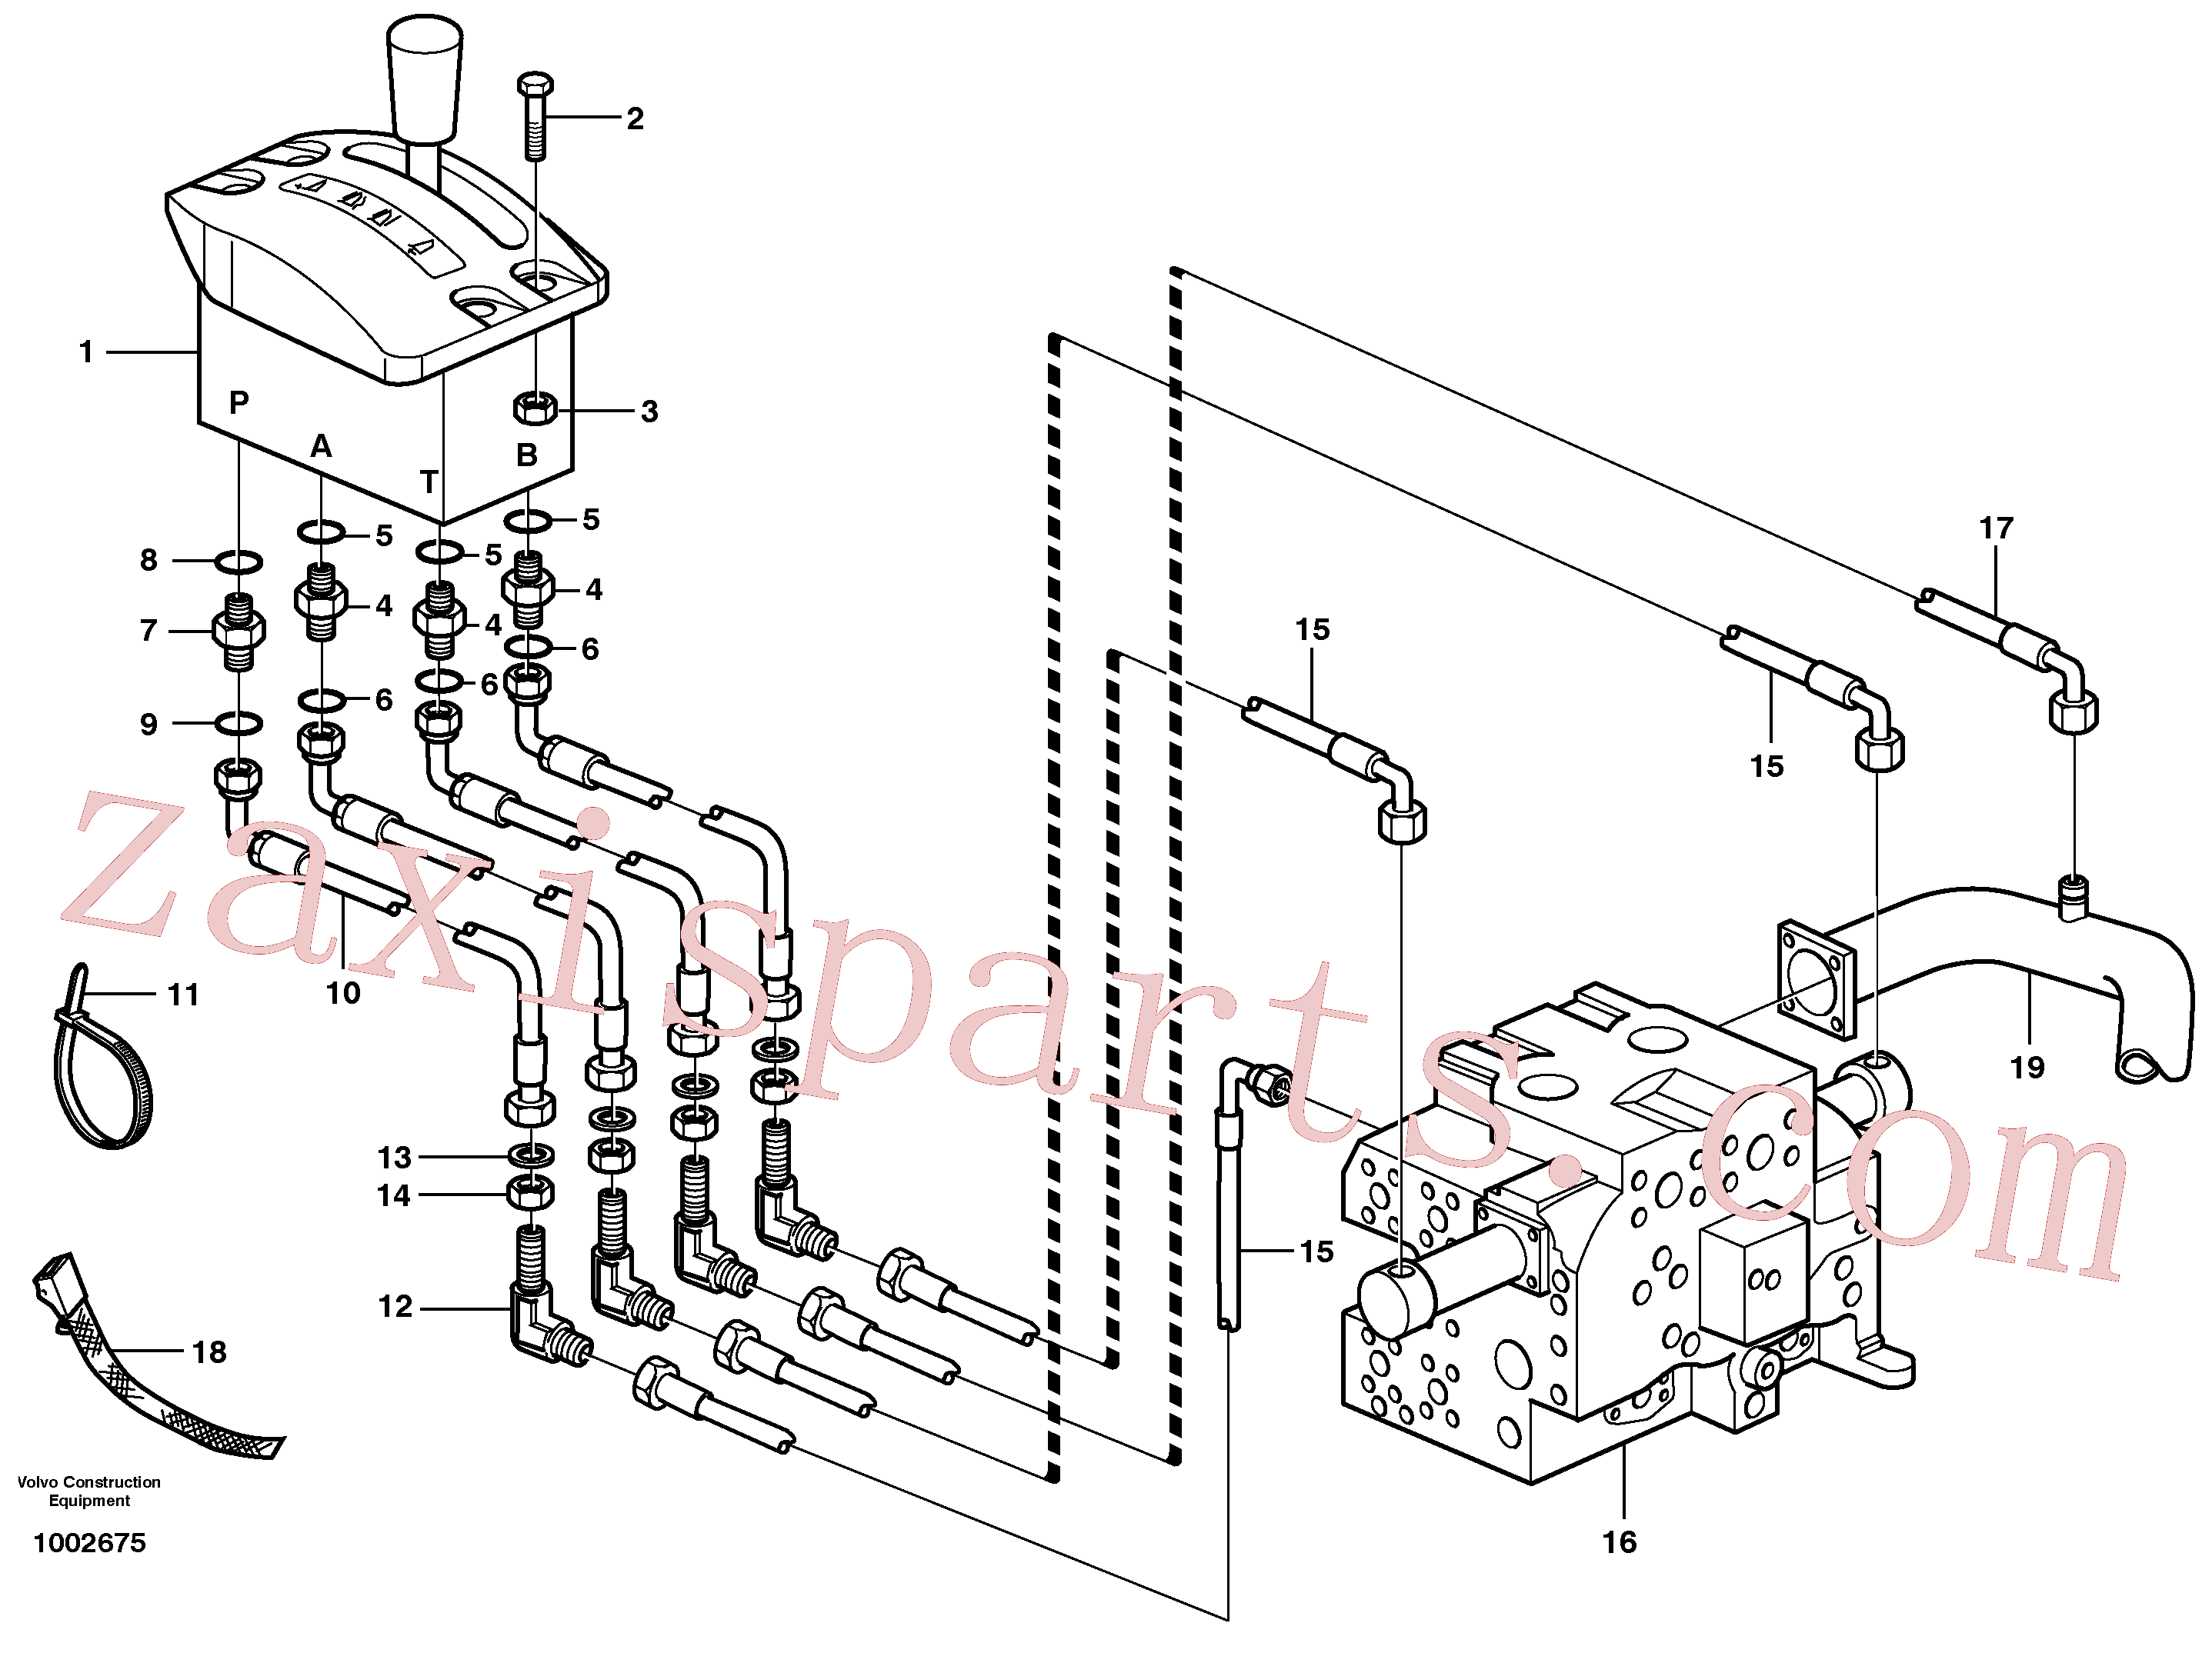 VOE13955781 for Volvo Servo system, tipper control(1002675 assembly)